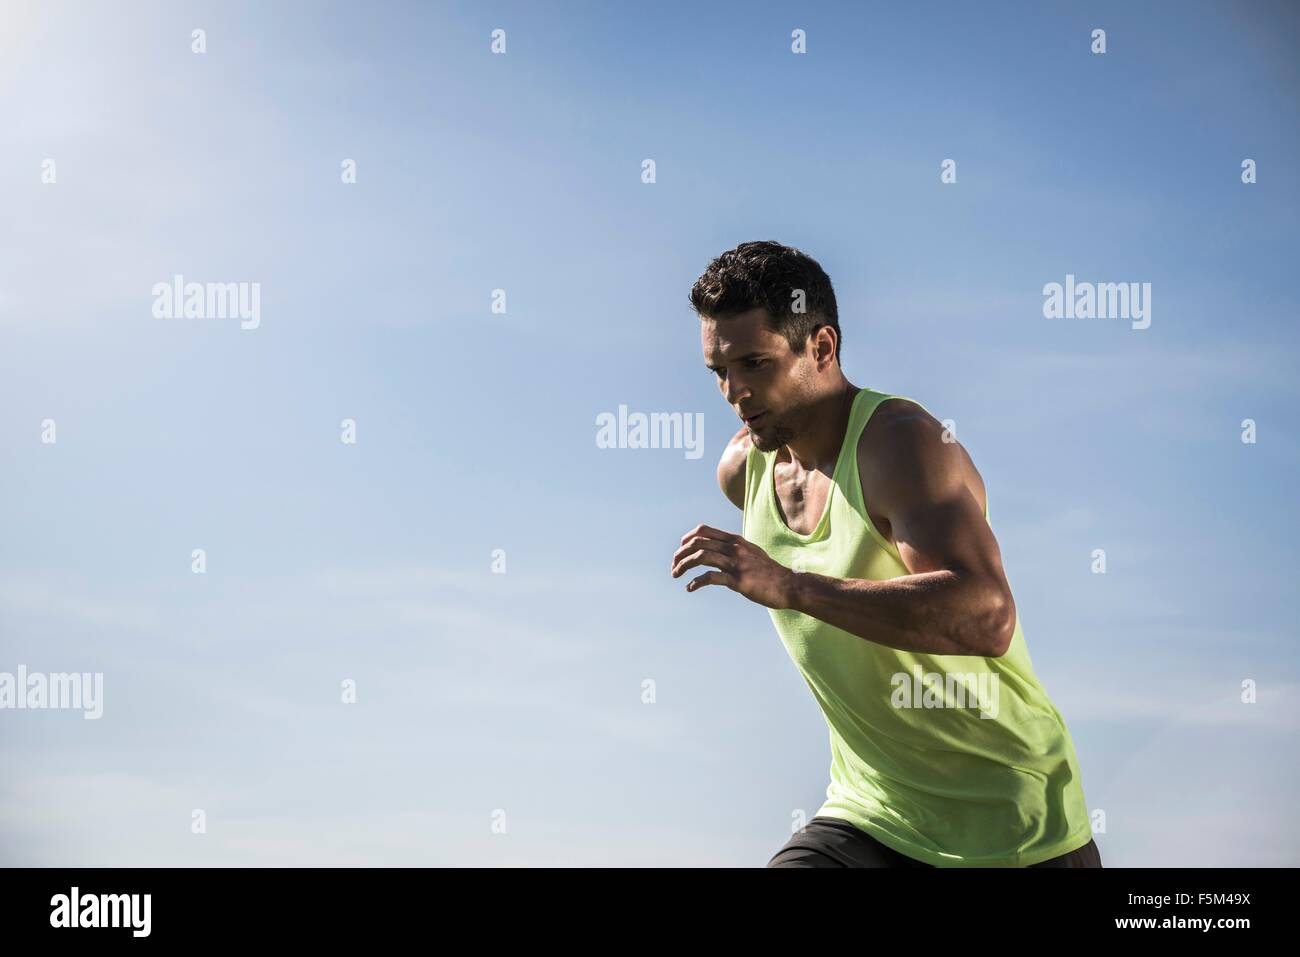 Young man wearing vest running in front of blue sky - Stock Image